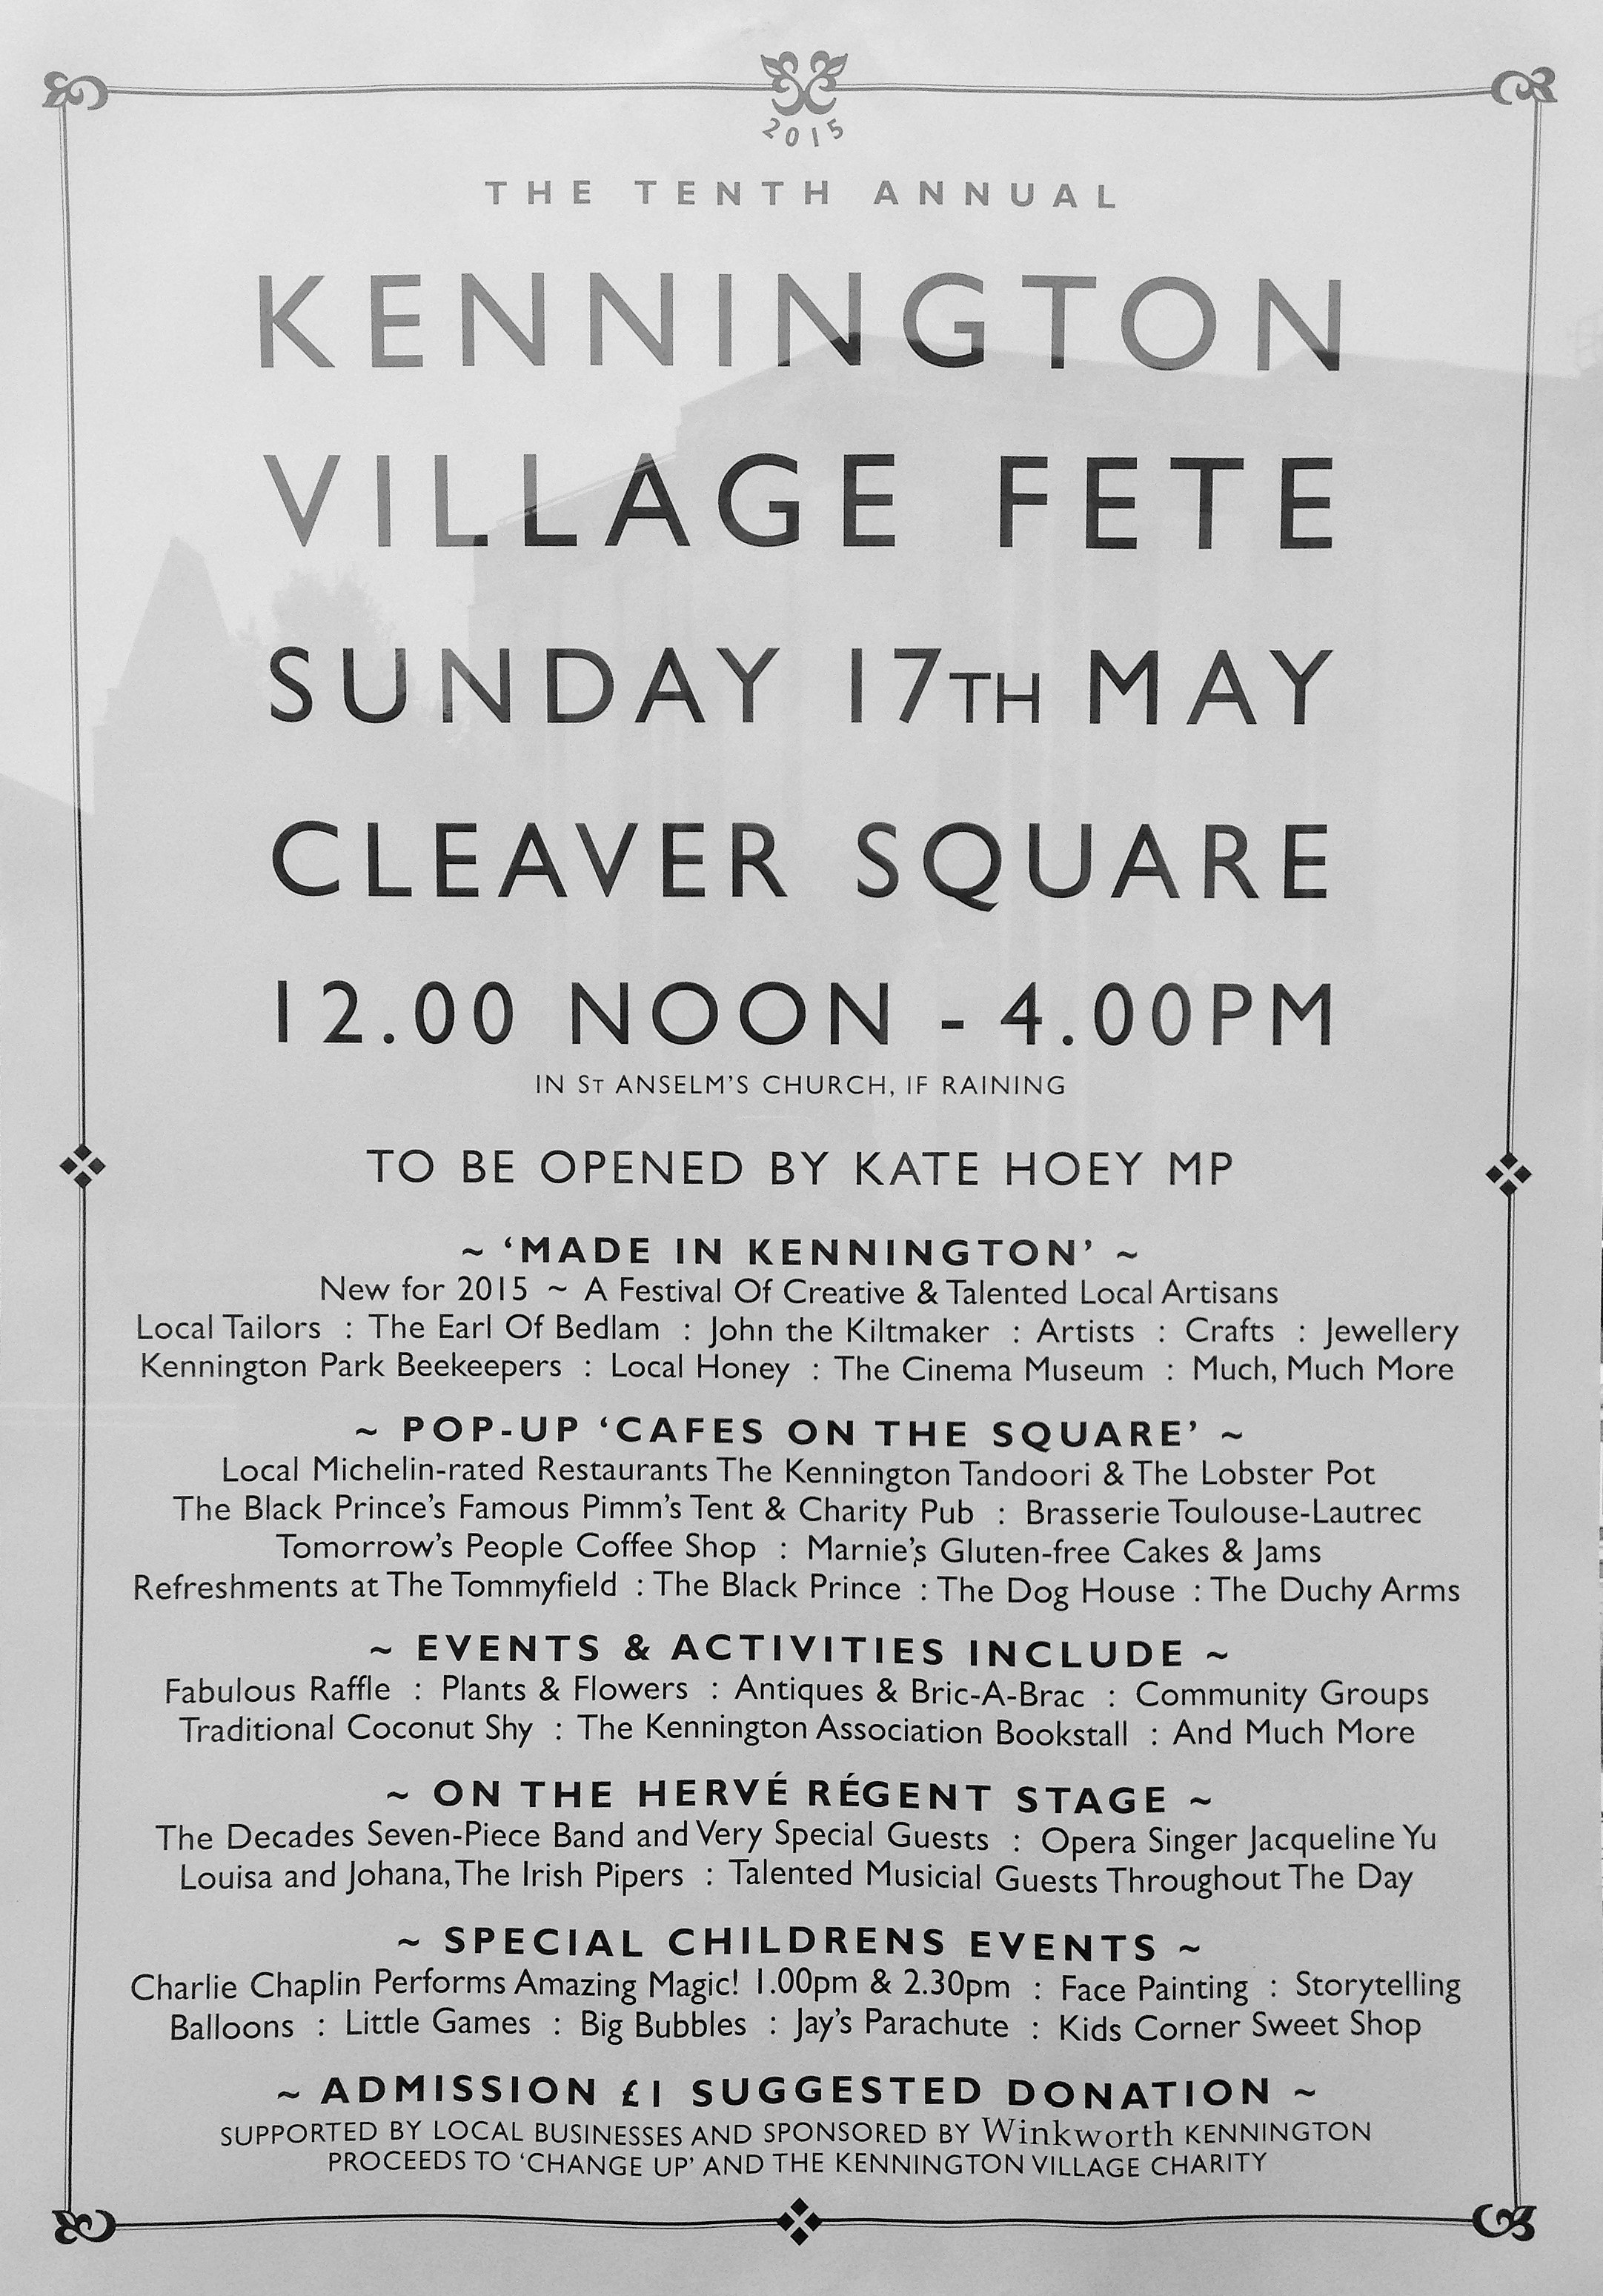 Kennington Village Fete flier